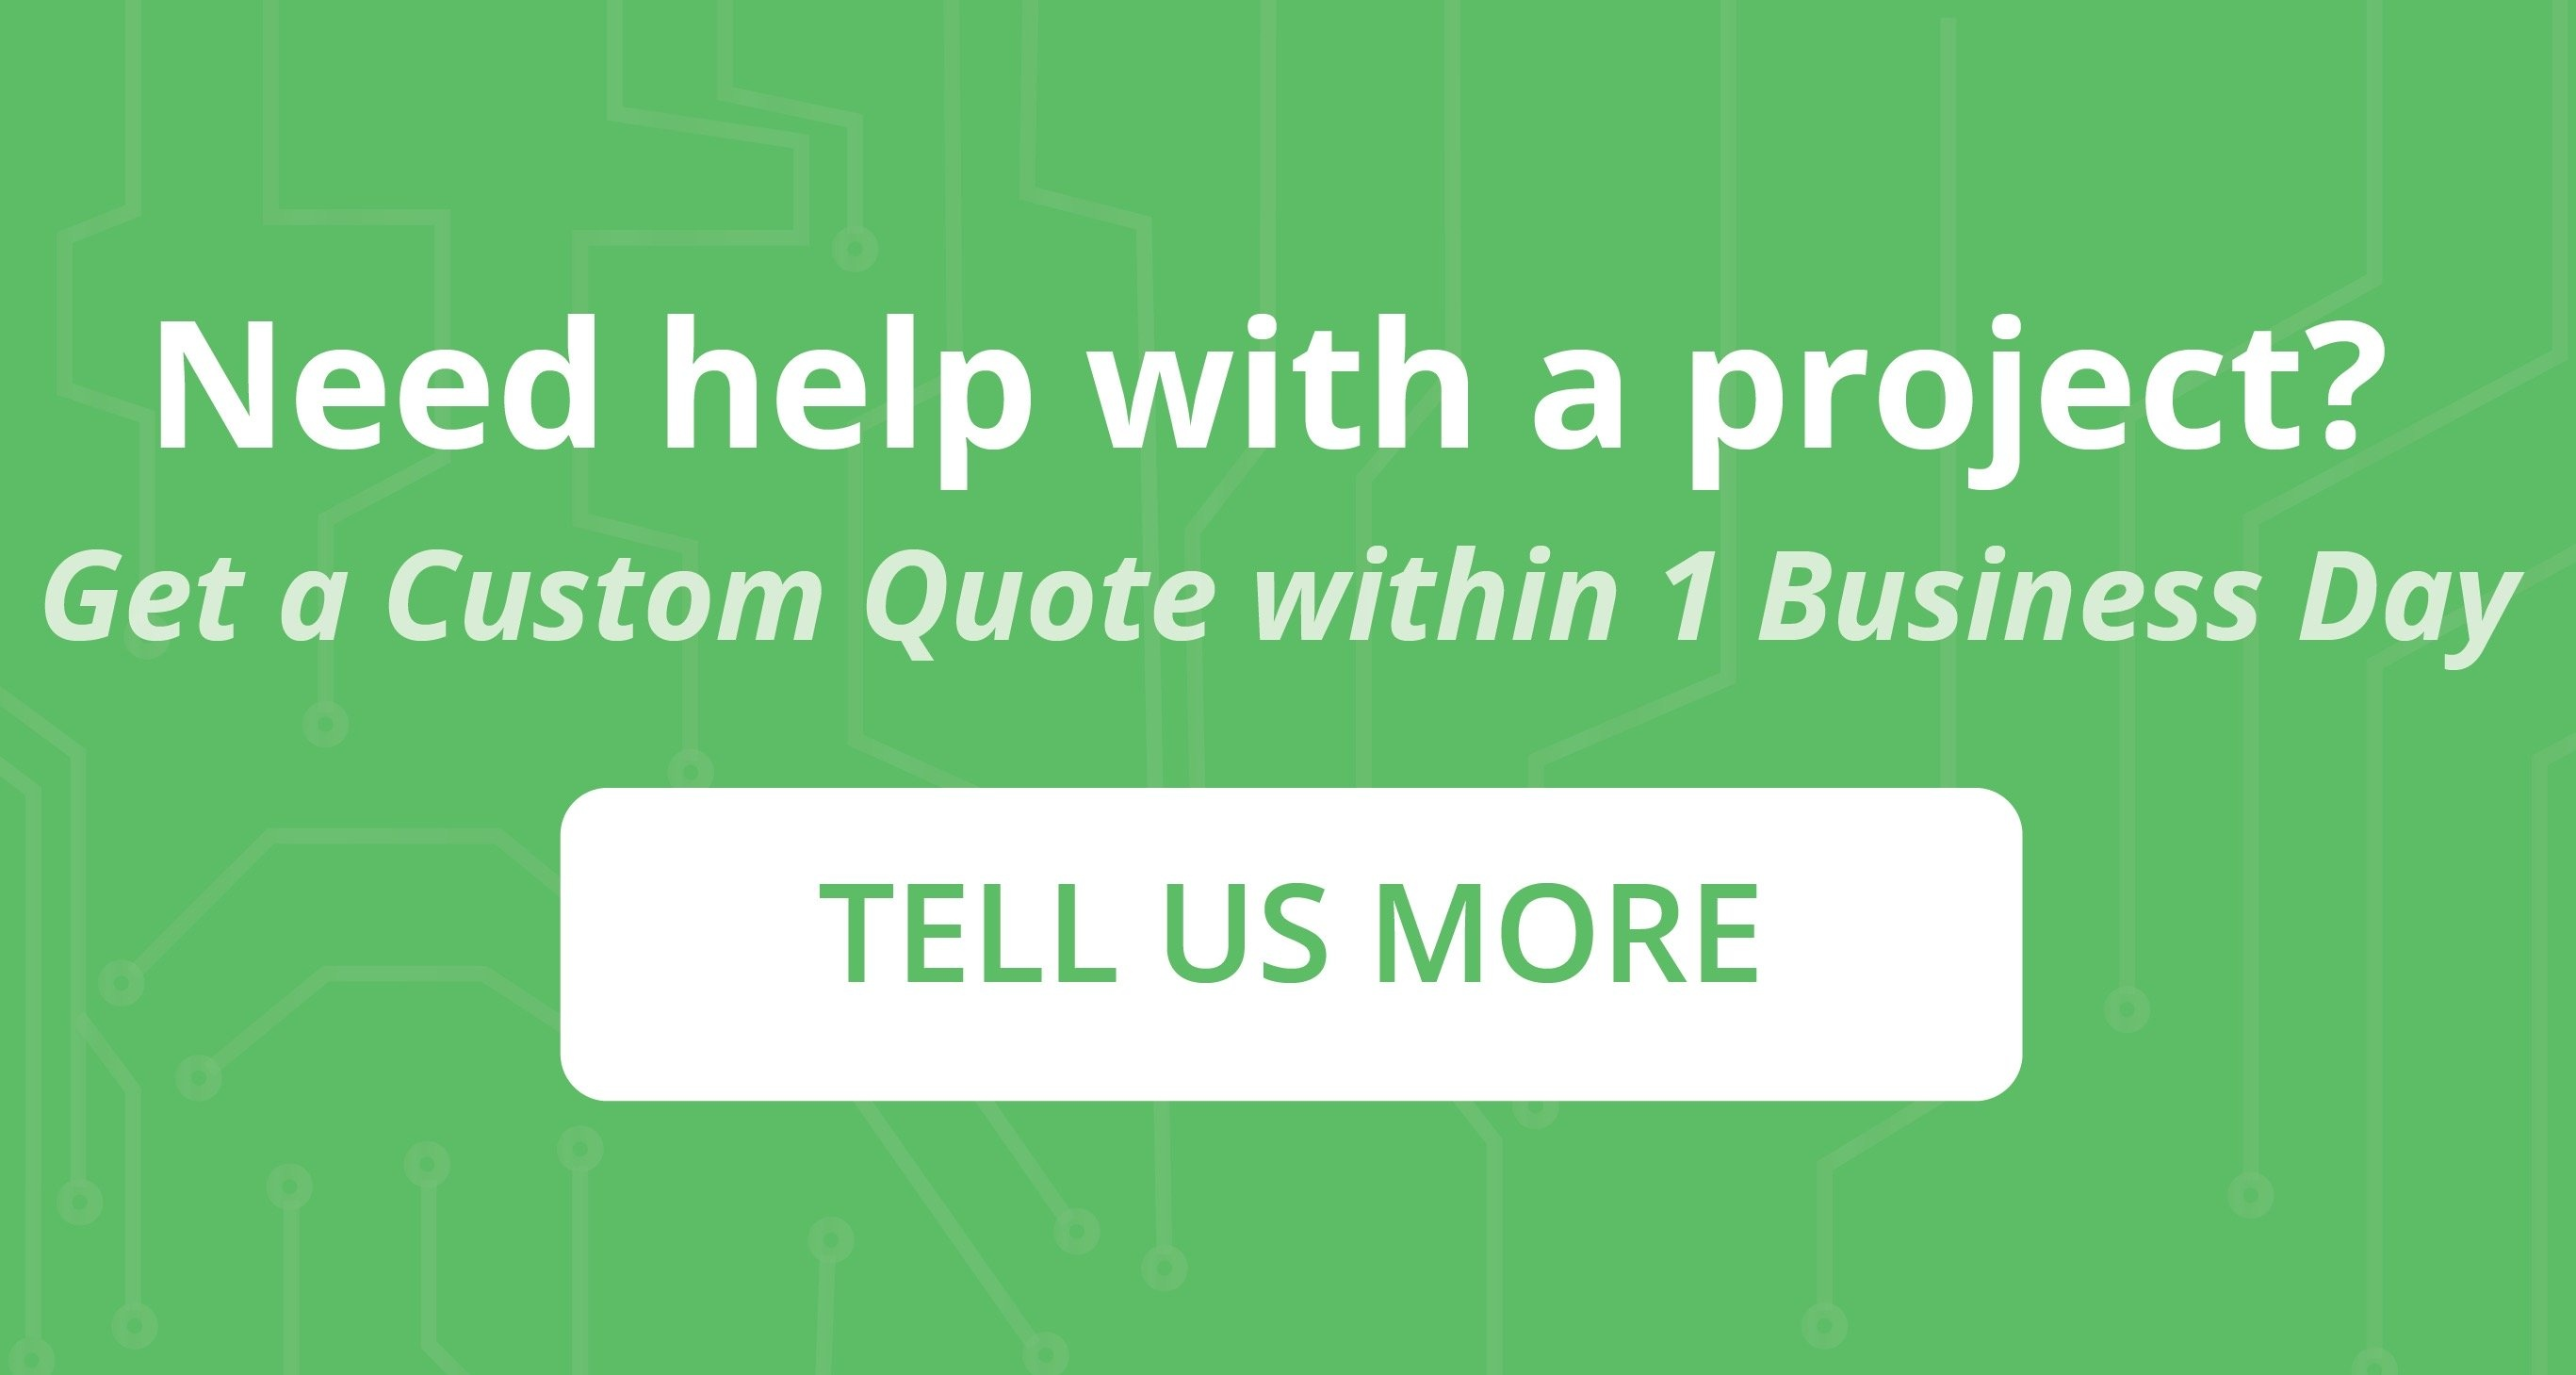 Get a Custom Quote Within 1 Business Day